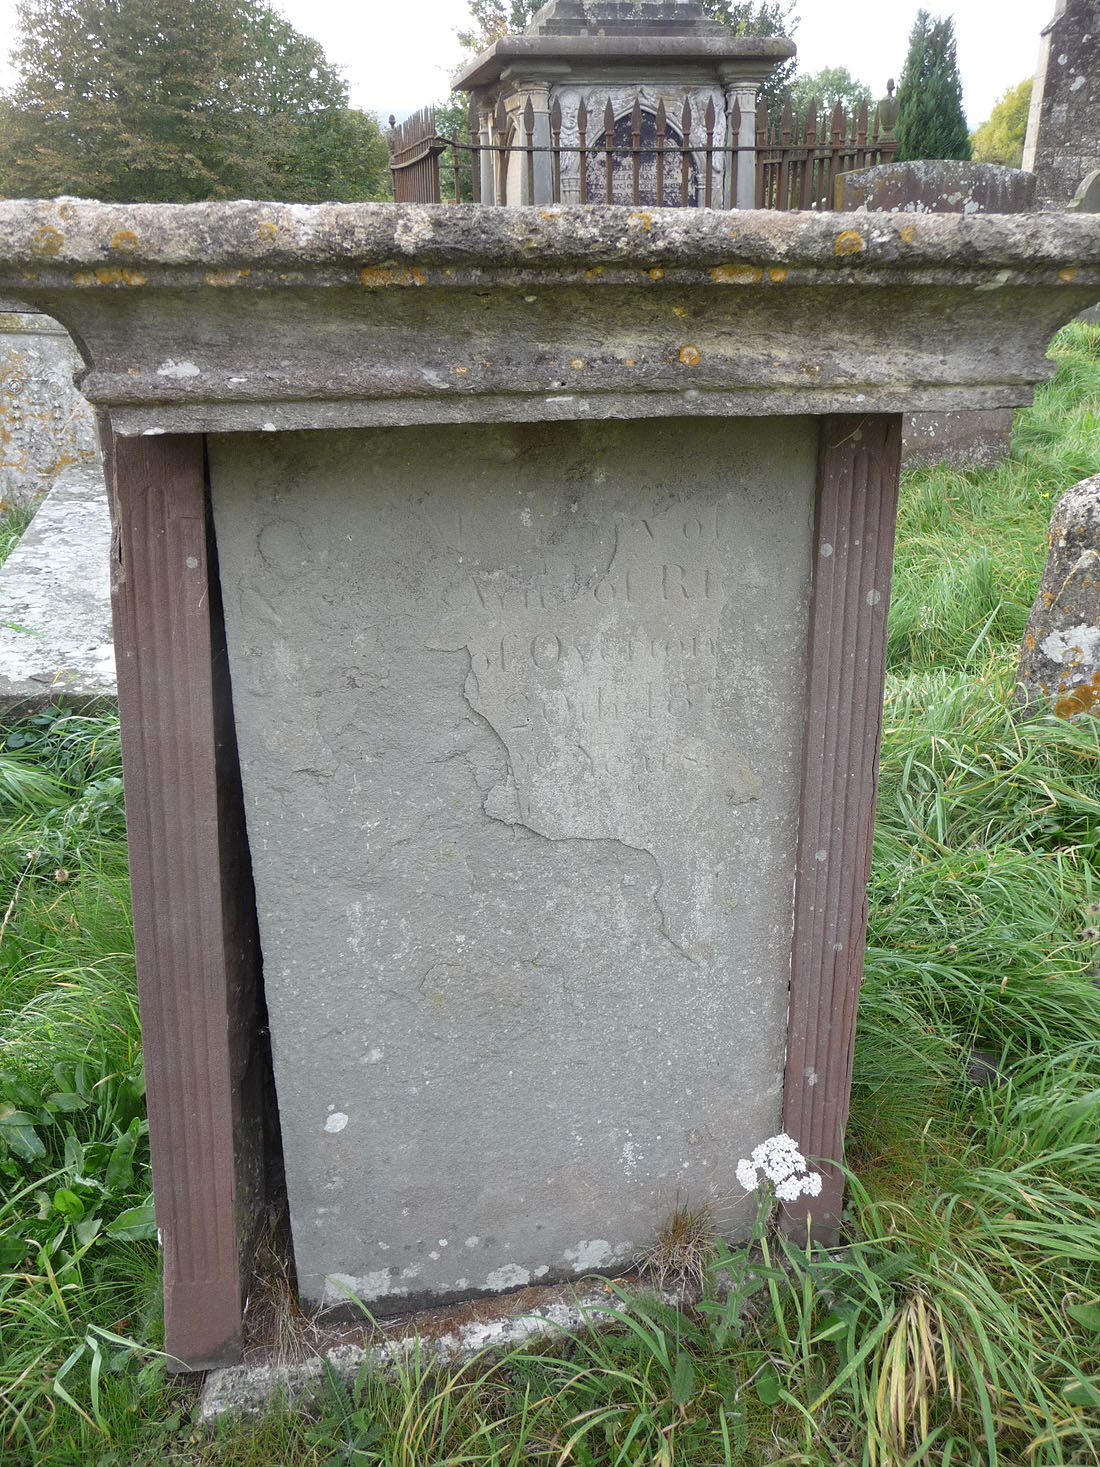 Ann Fryer's (nee Jones) inscription on the John Fryer & Mary King Tomb